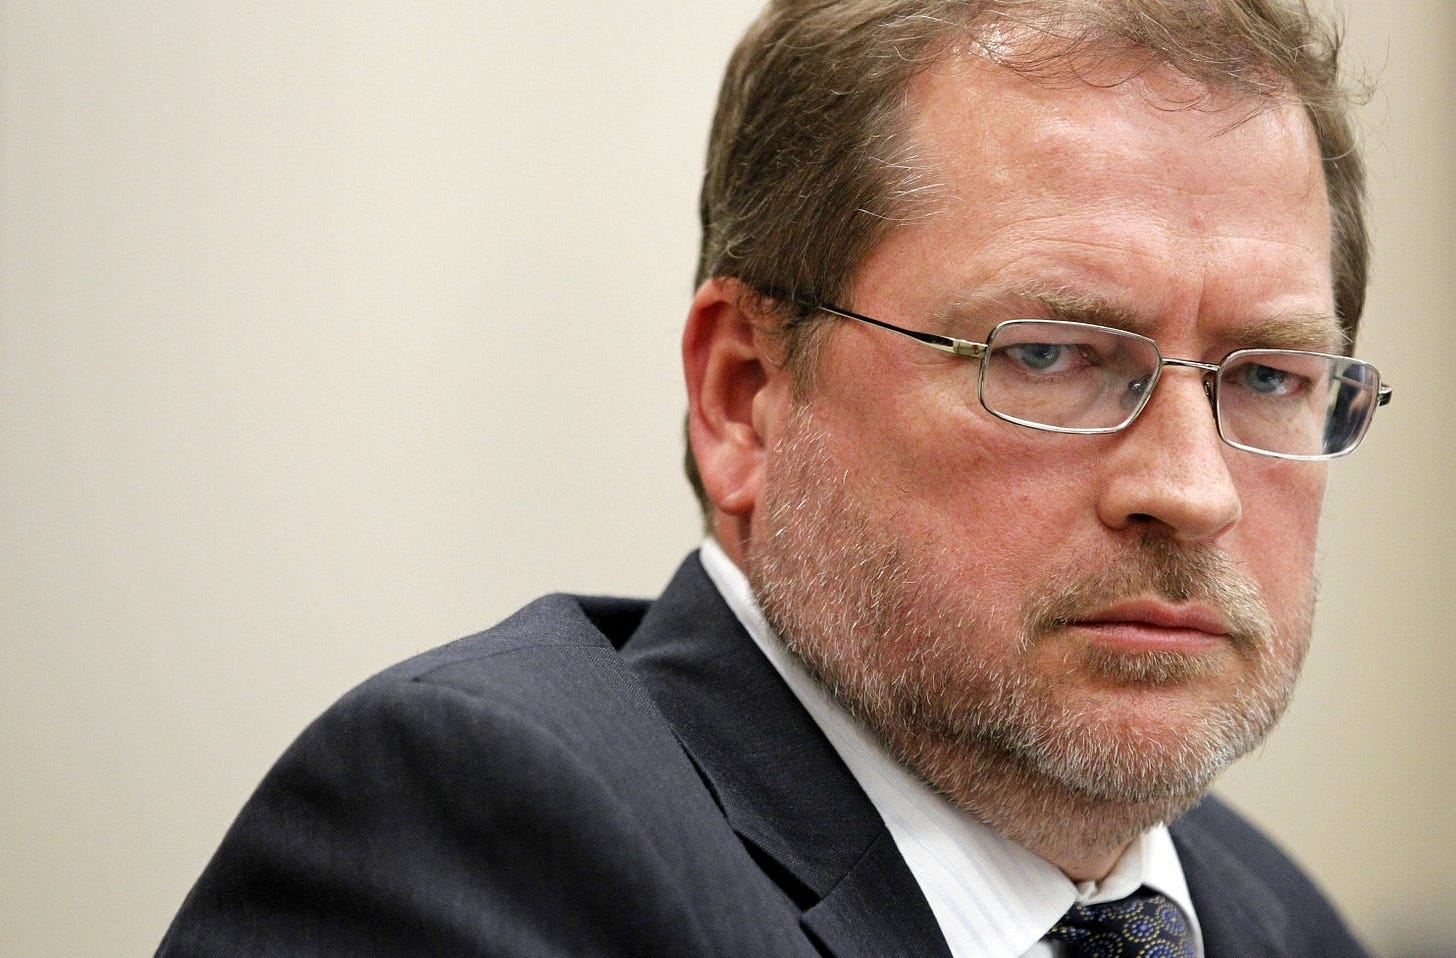 Grover Norquist: a misleading accounting of recent history - The ...